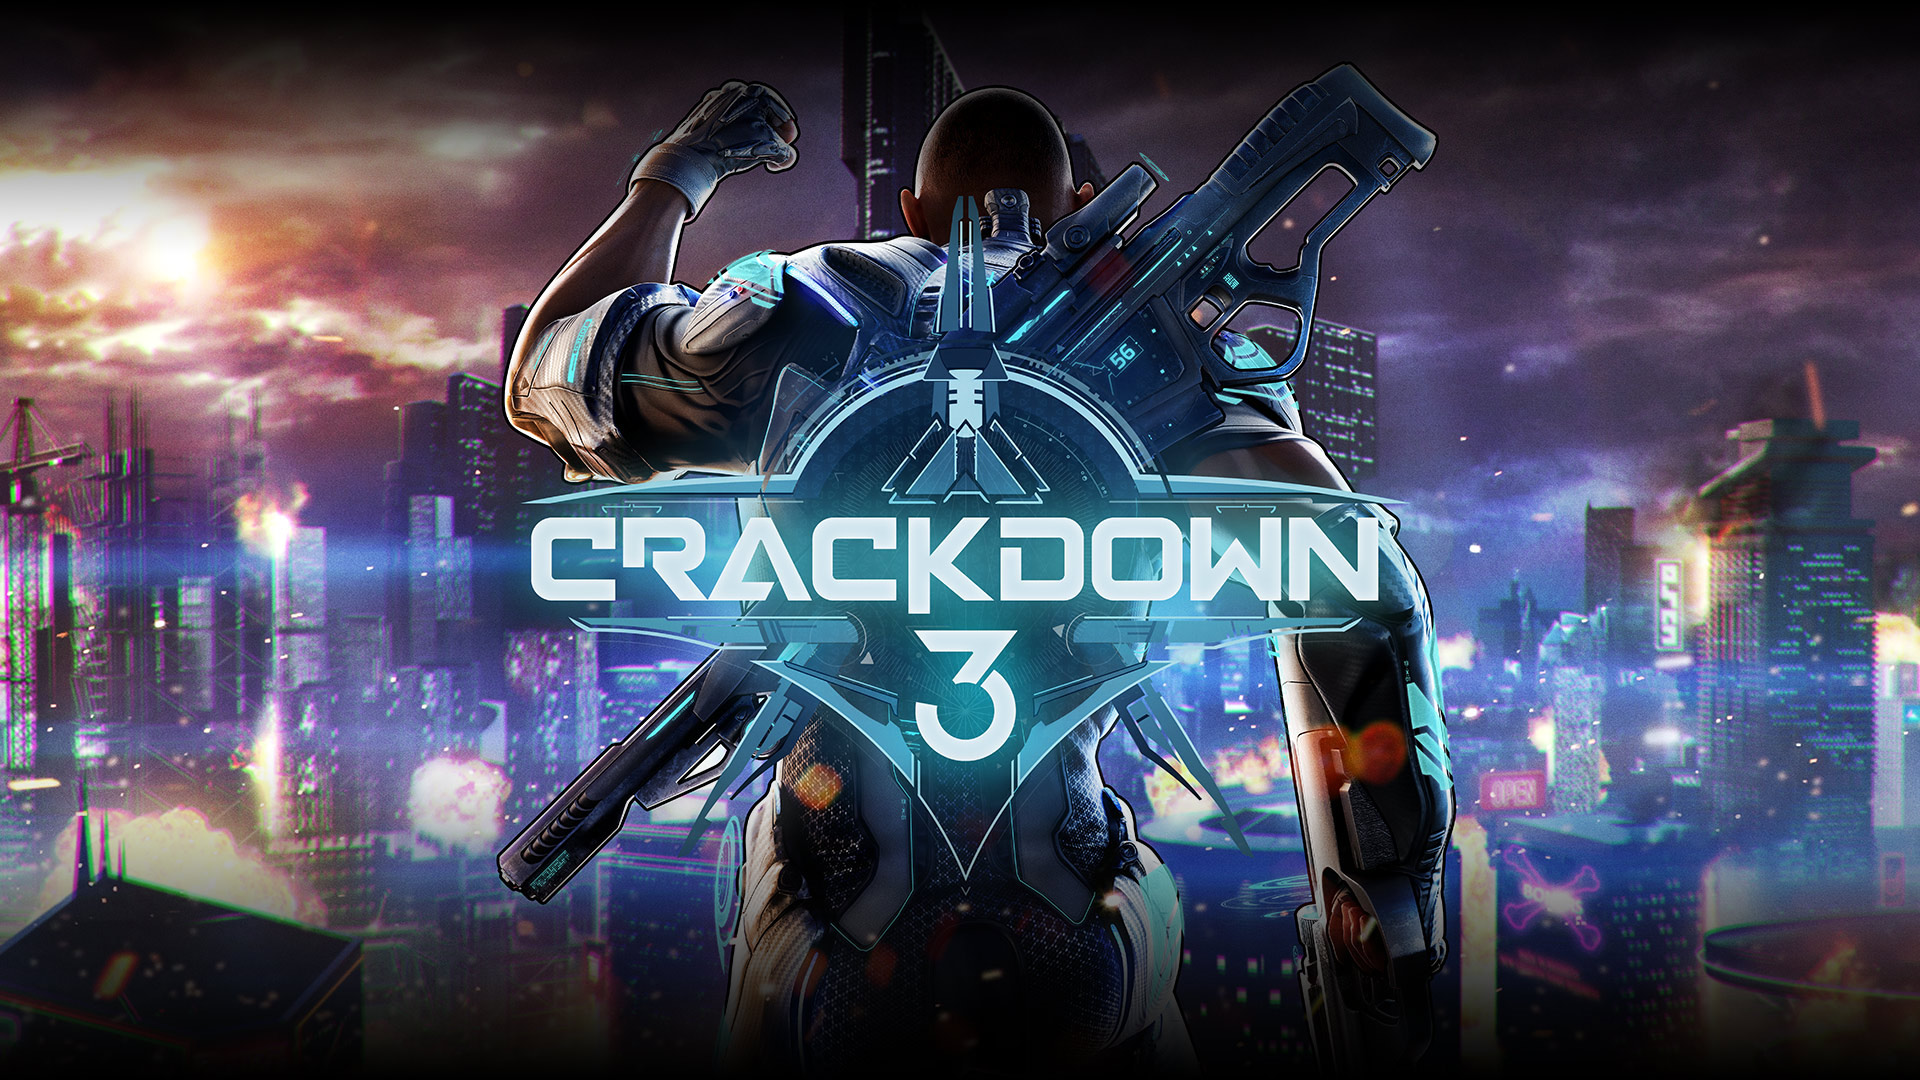 max level cap, skills, crackdown 3